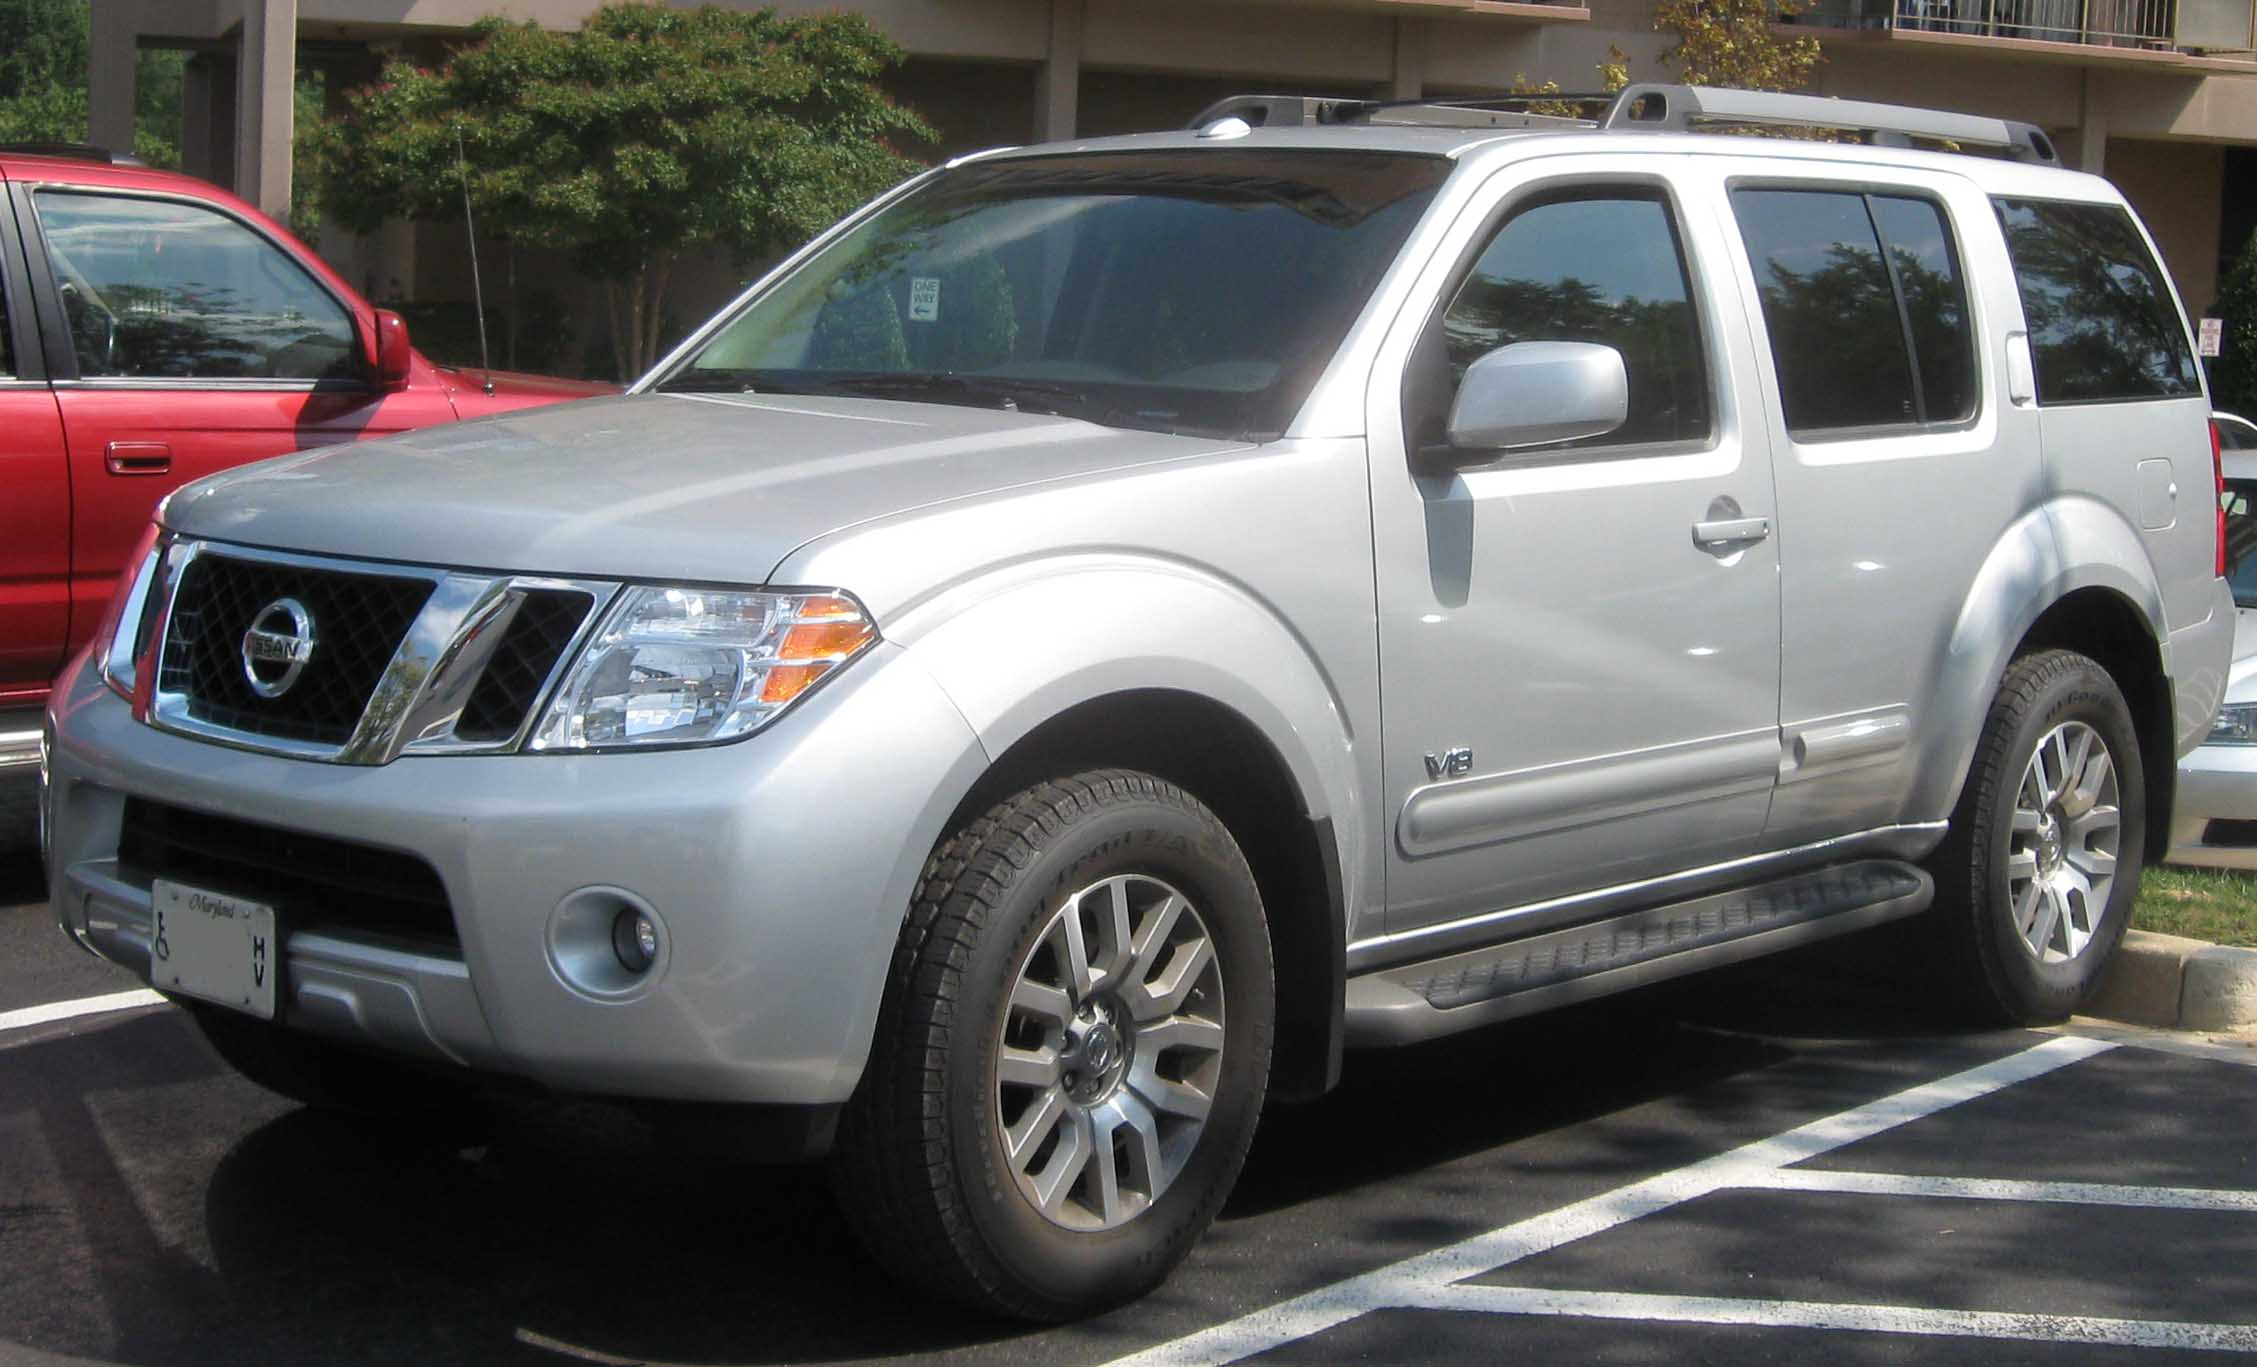 2008 nissan pathfinder information and photos zombiedrive 2008 nissan pathfinder 5 nissan pathfinder 5 vanachro Image collections